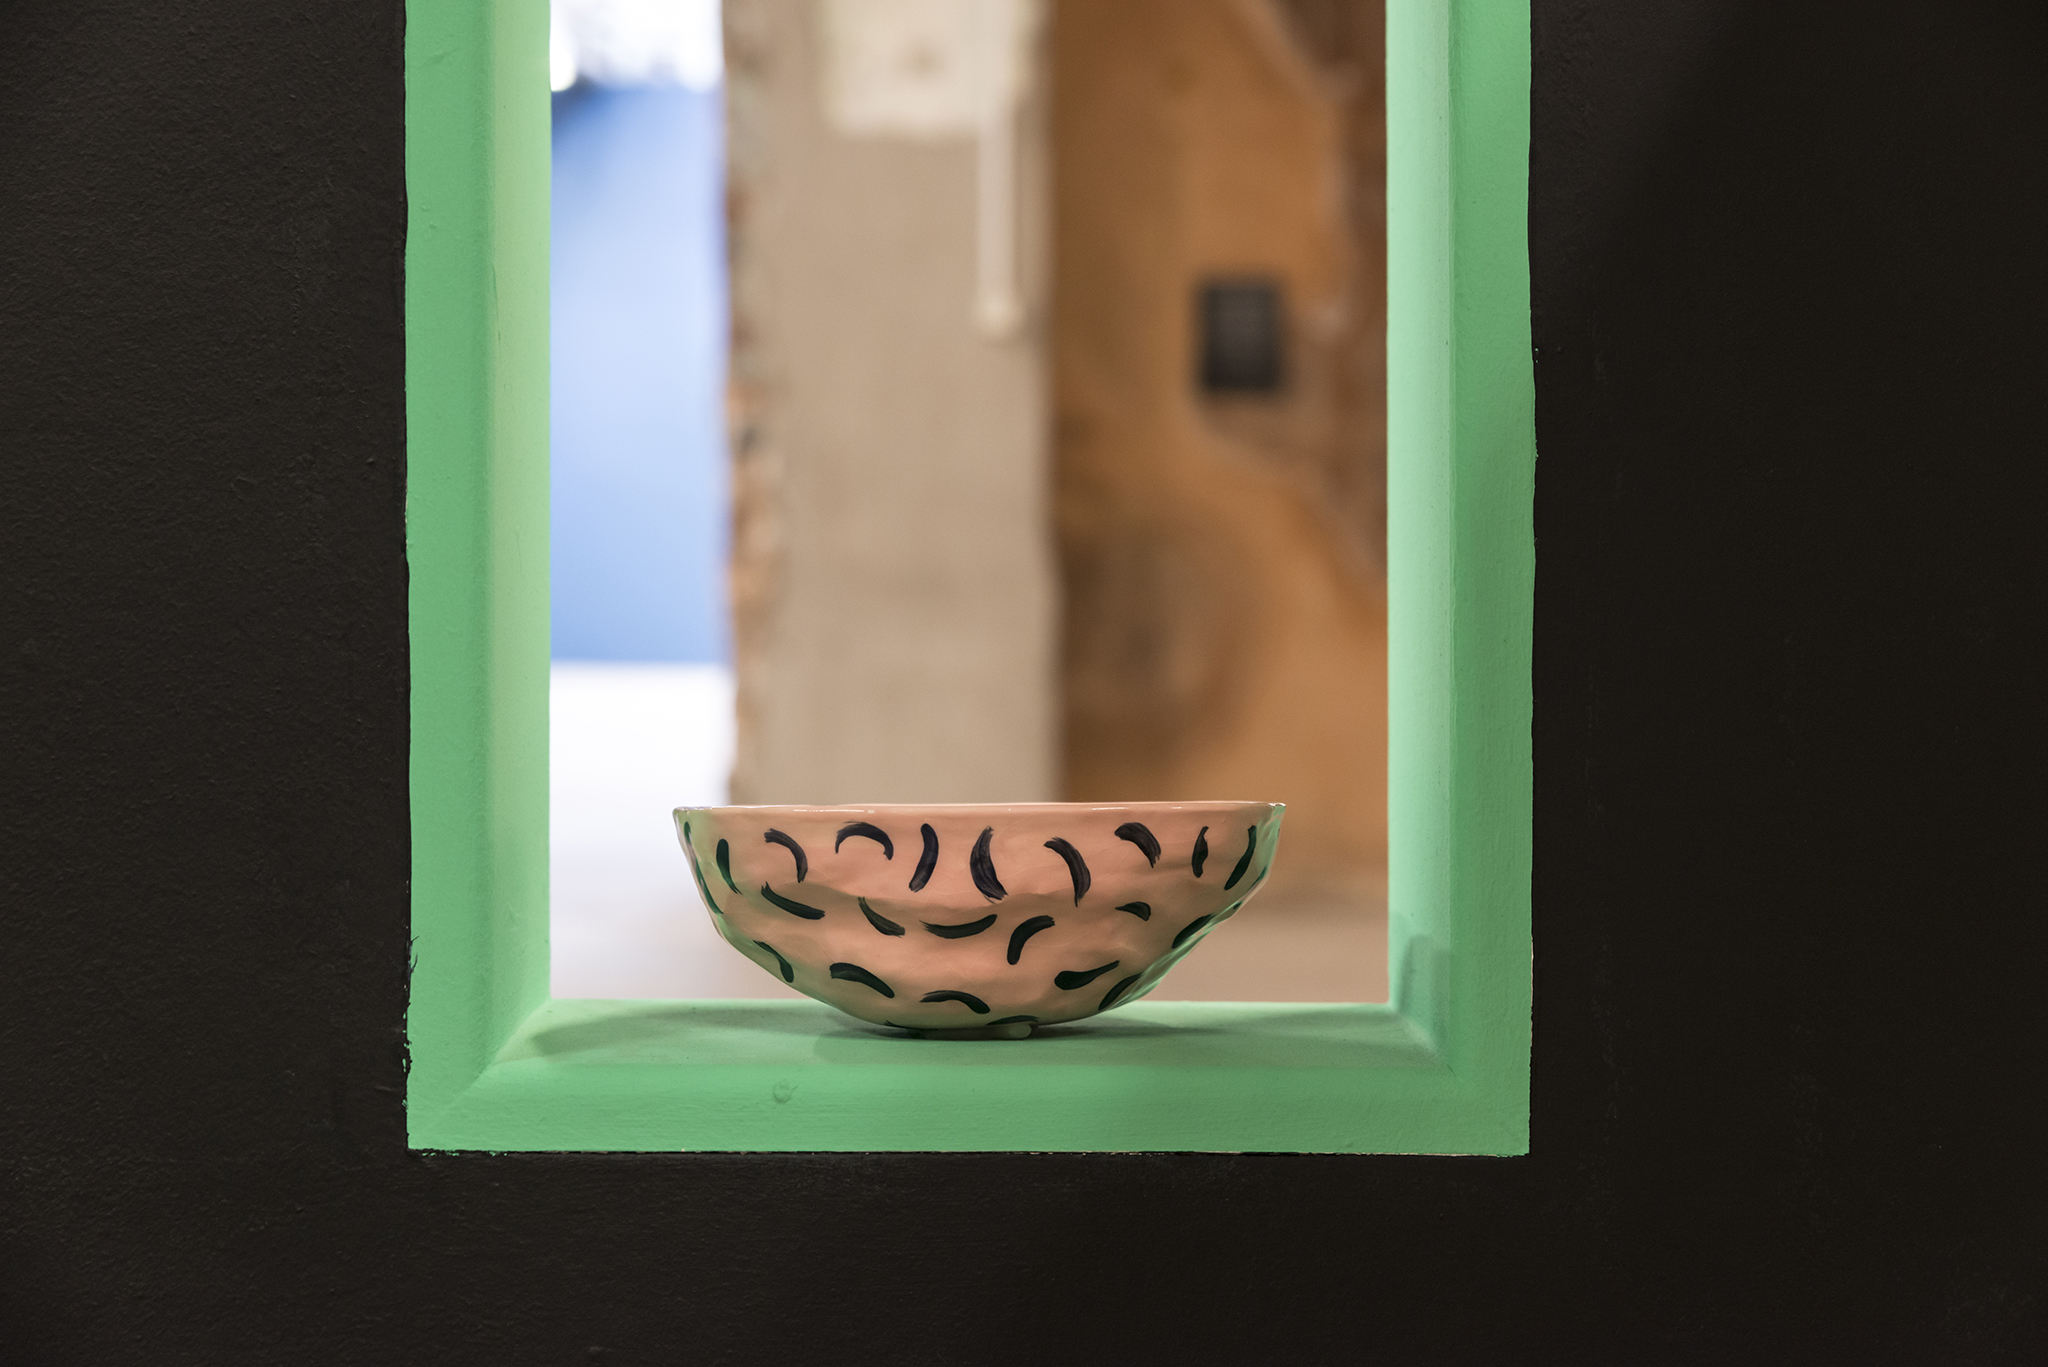 patterned soap dish on green window ledge